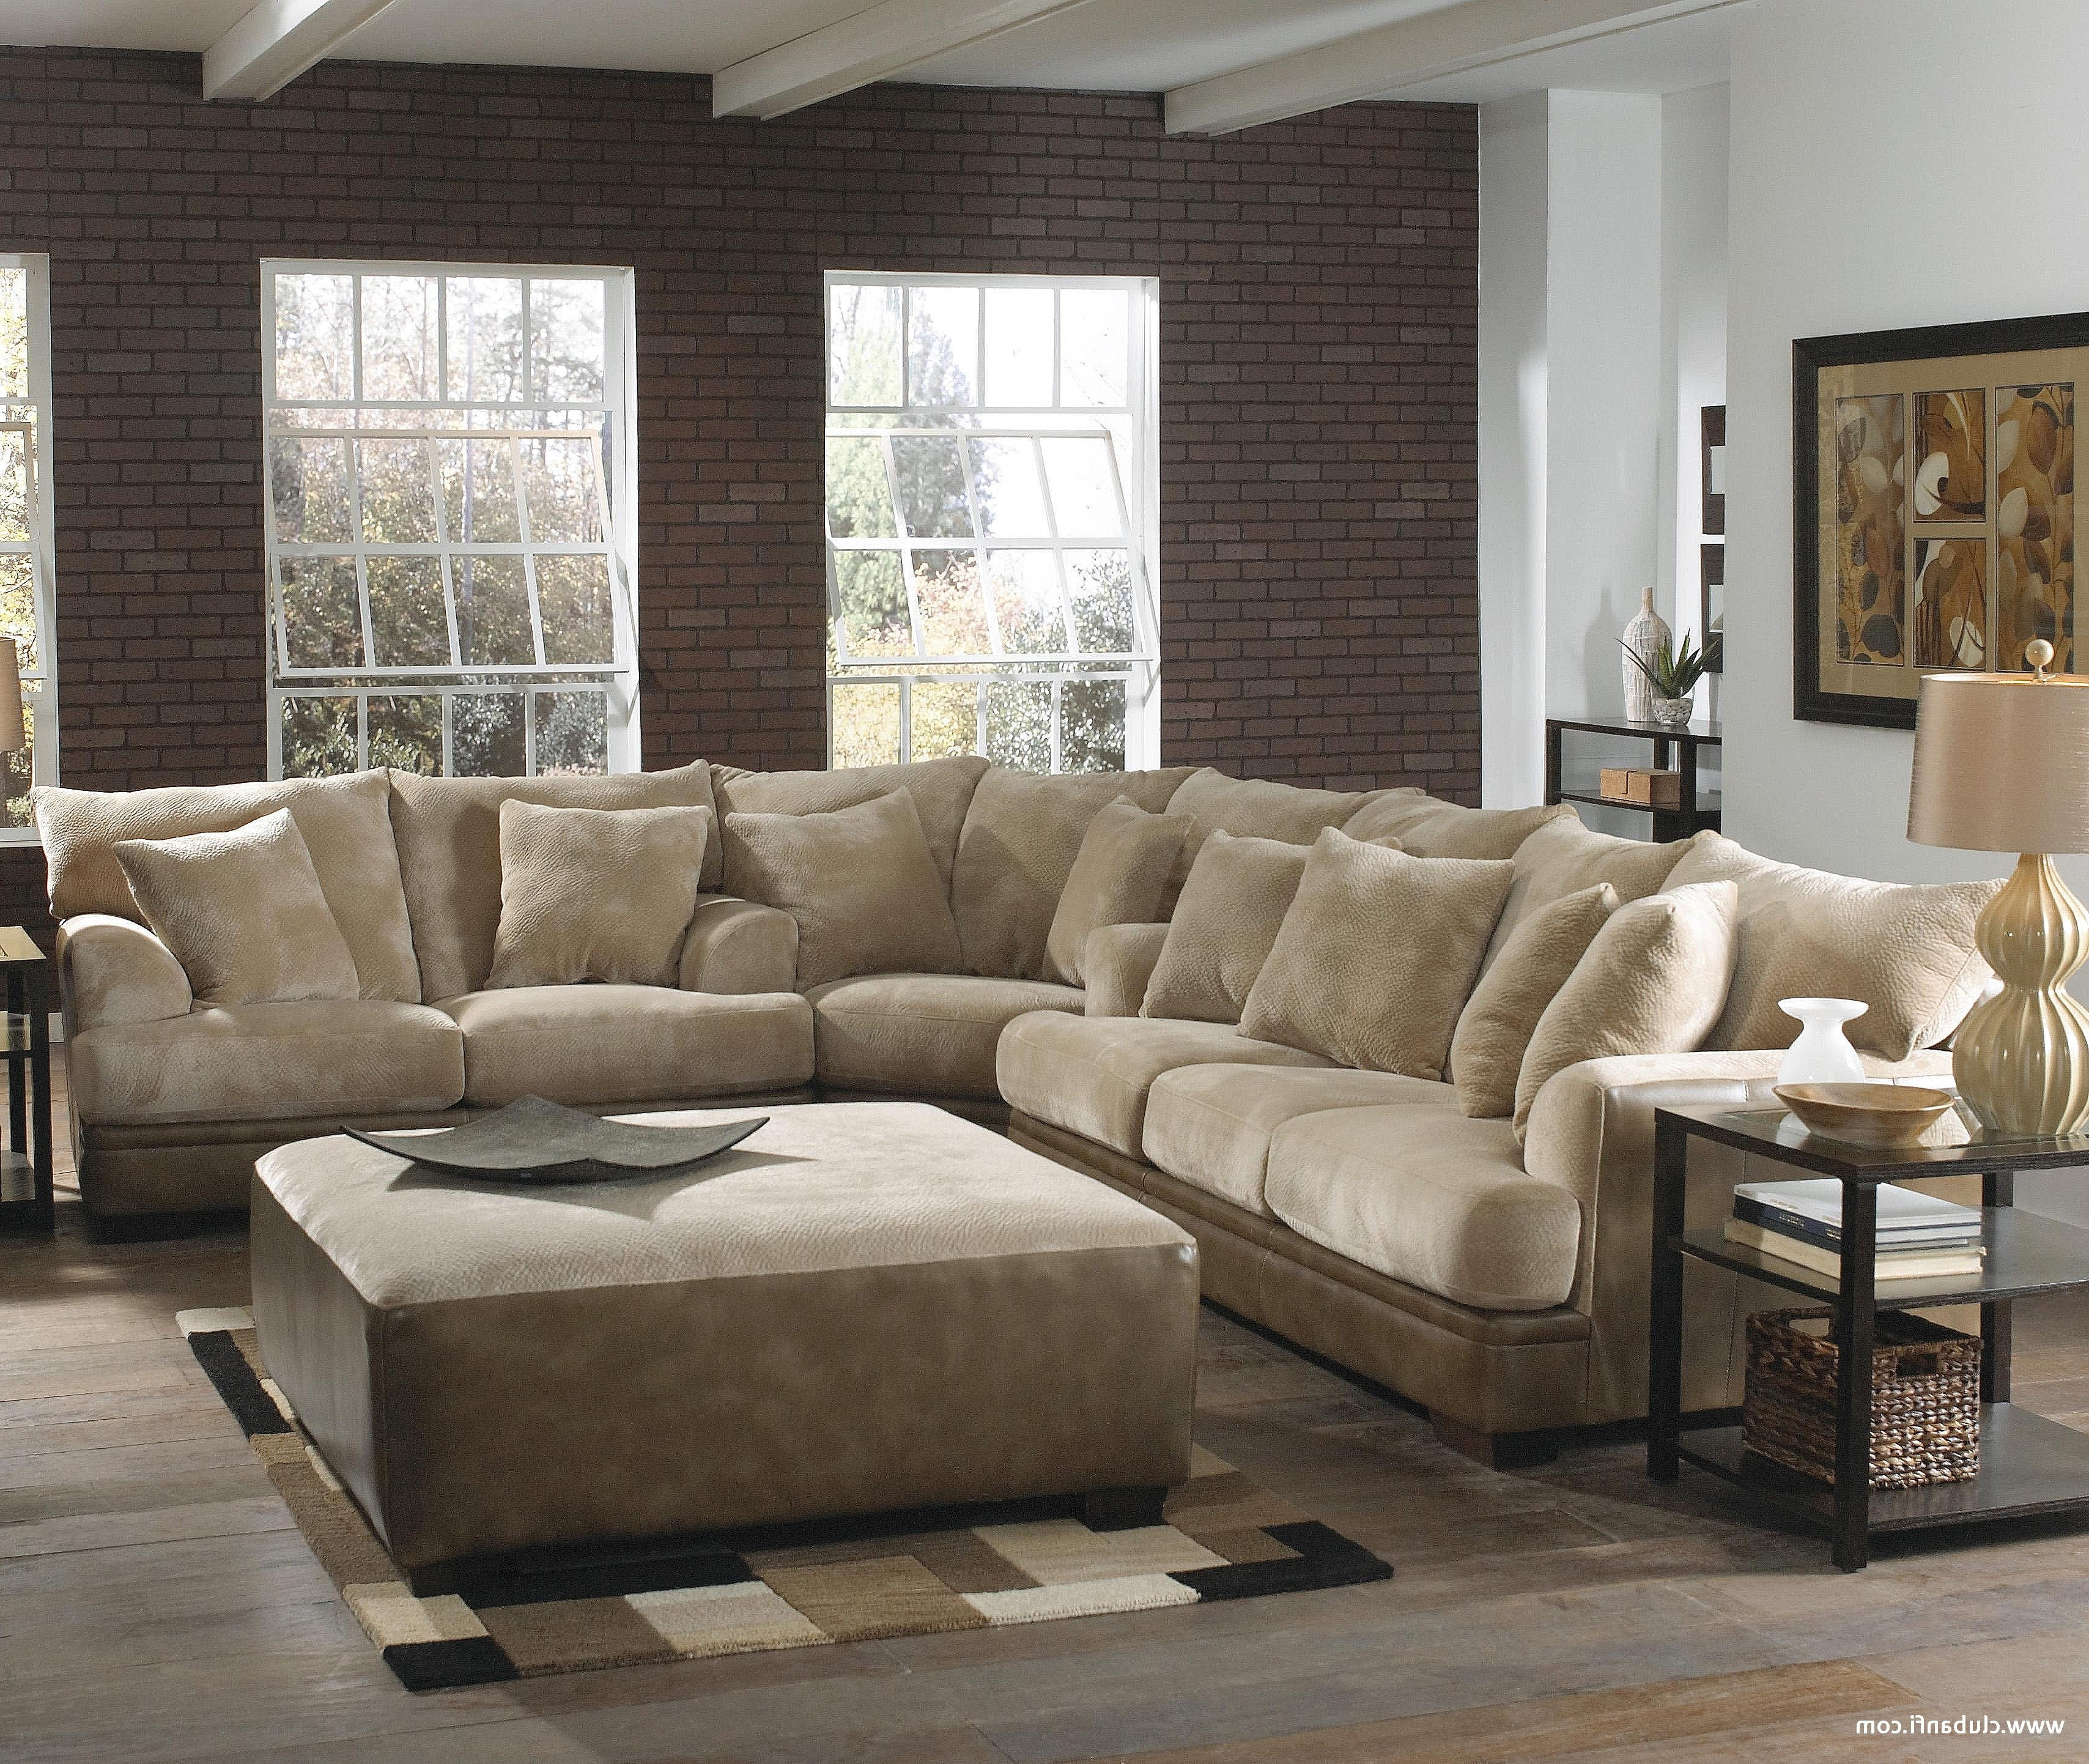 Deep Seating Sectional Sofas Within Current Picture 6 Of 34 – Plush Sectional Sofas Luxury Living Room Deep (View 13 of 15)